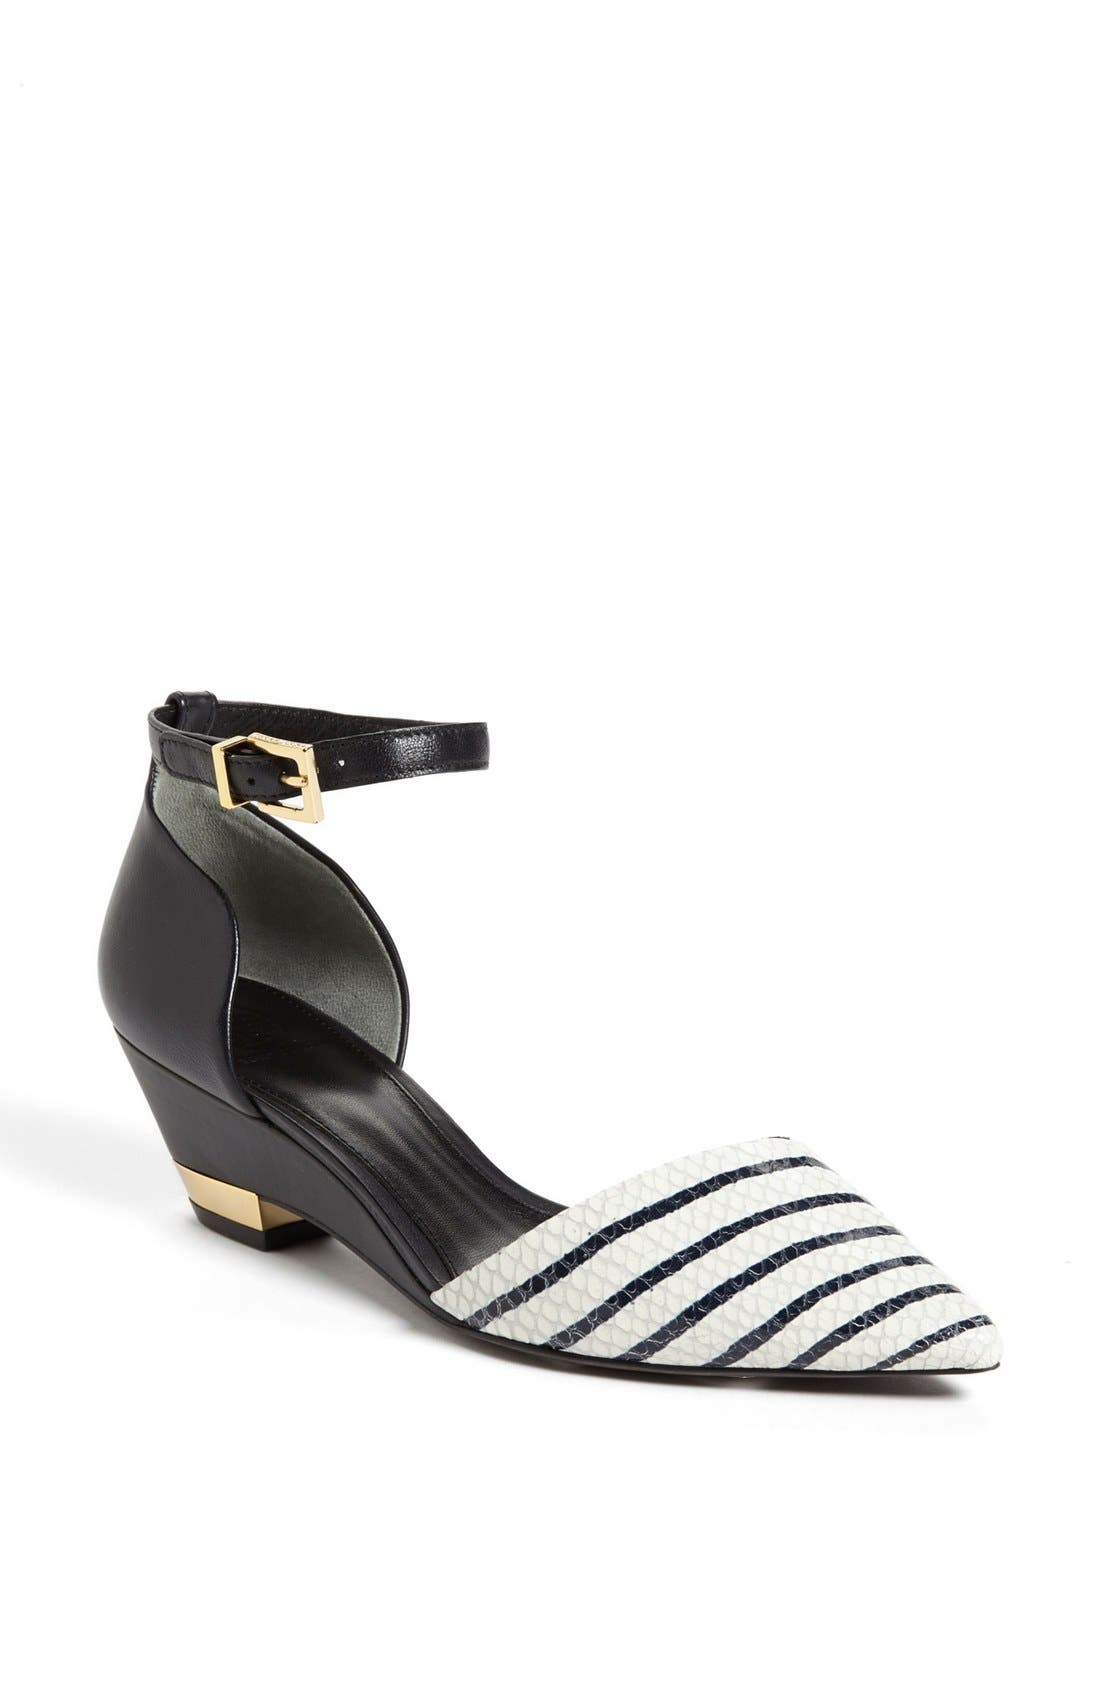 Alternate Image 1 Selected - Tory Burch 'Mackenna' Wedge Pump